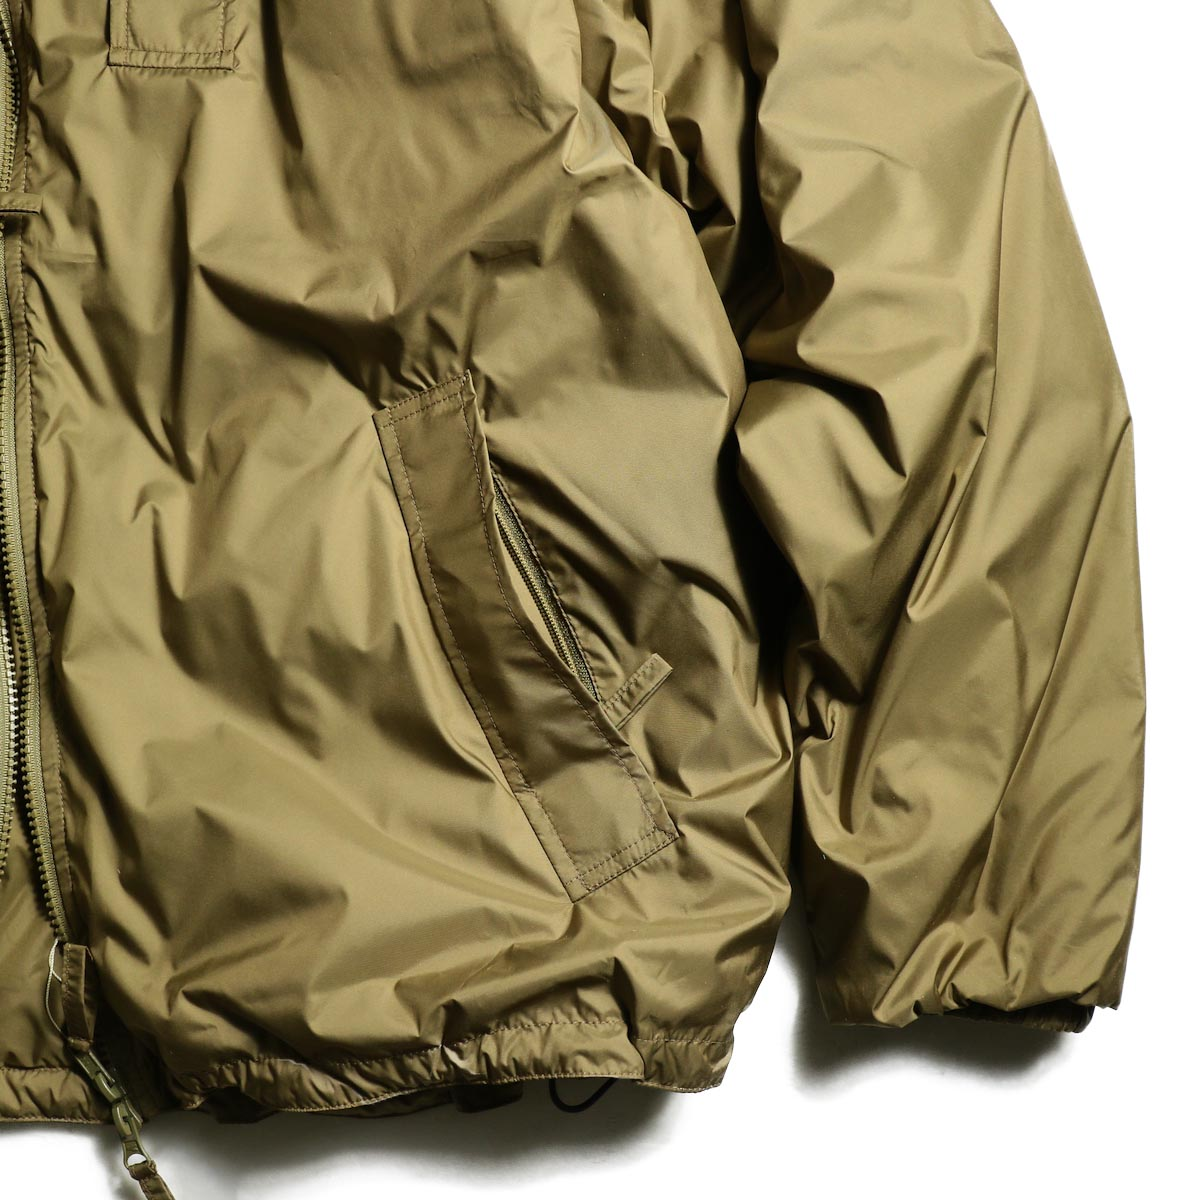 J&S Franklin / BRITISH ARMY PCS LIGHT WEIGHT DOWN JACKET (Coyote) 袖、裾